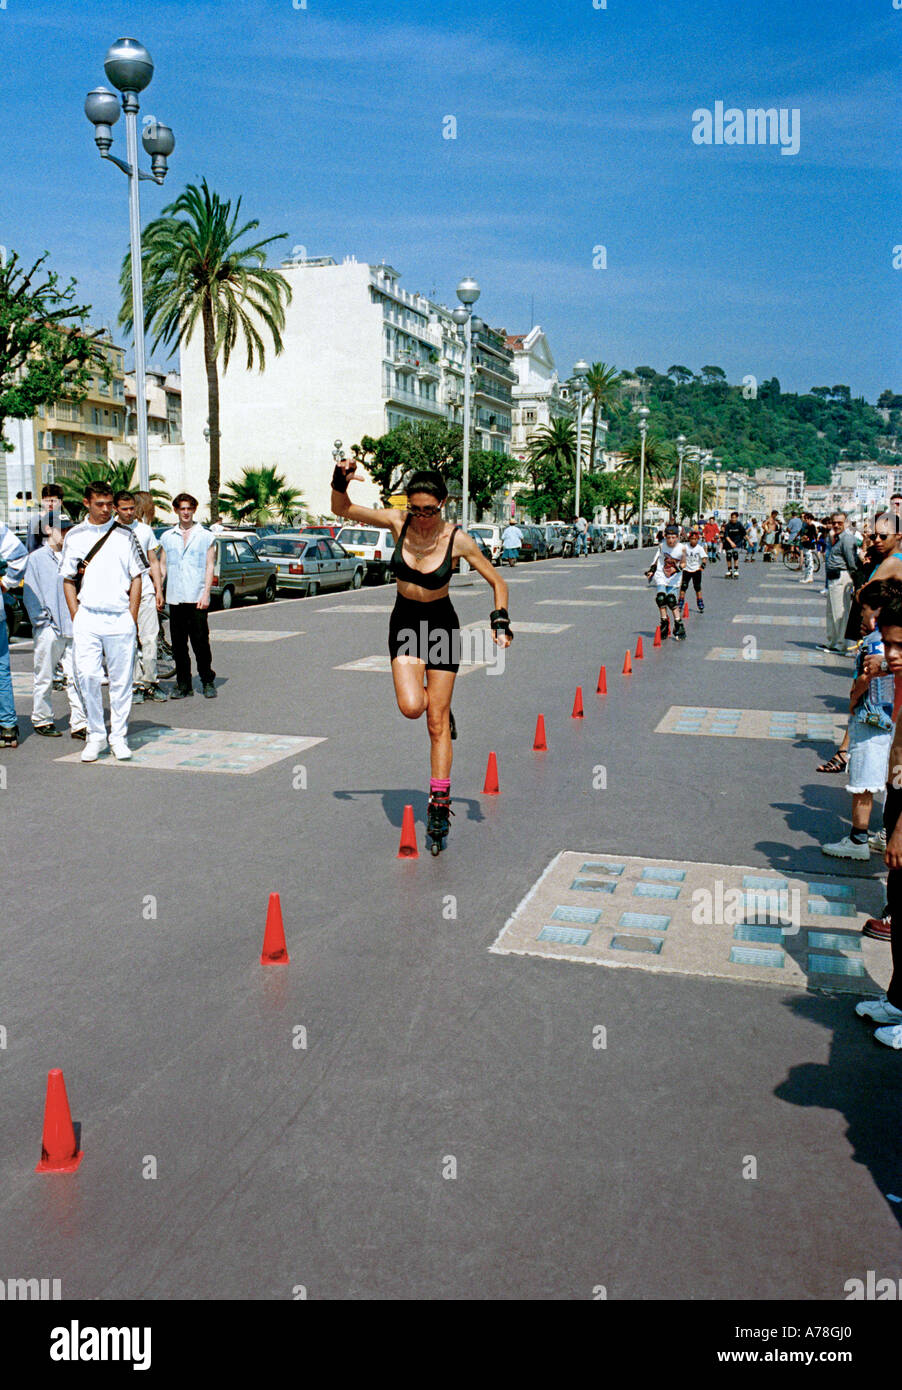 Rollerblading  on the Promenade des Anglais, Nice, on the Cote d'Azur, French Riviera, France Stock Photo